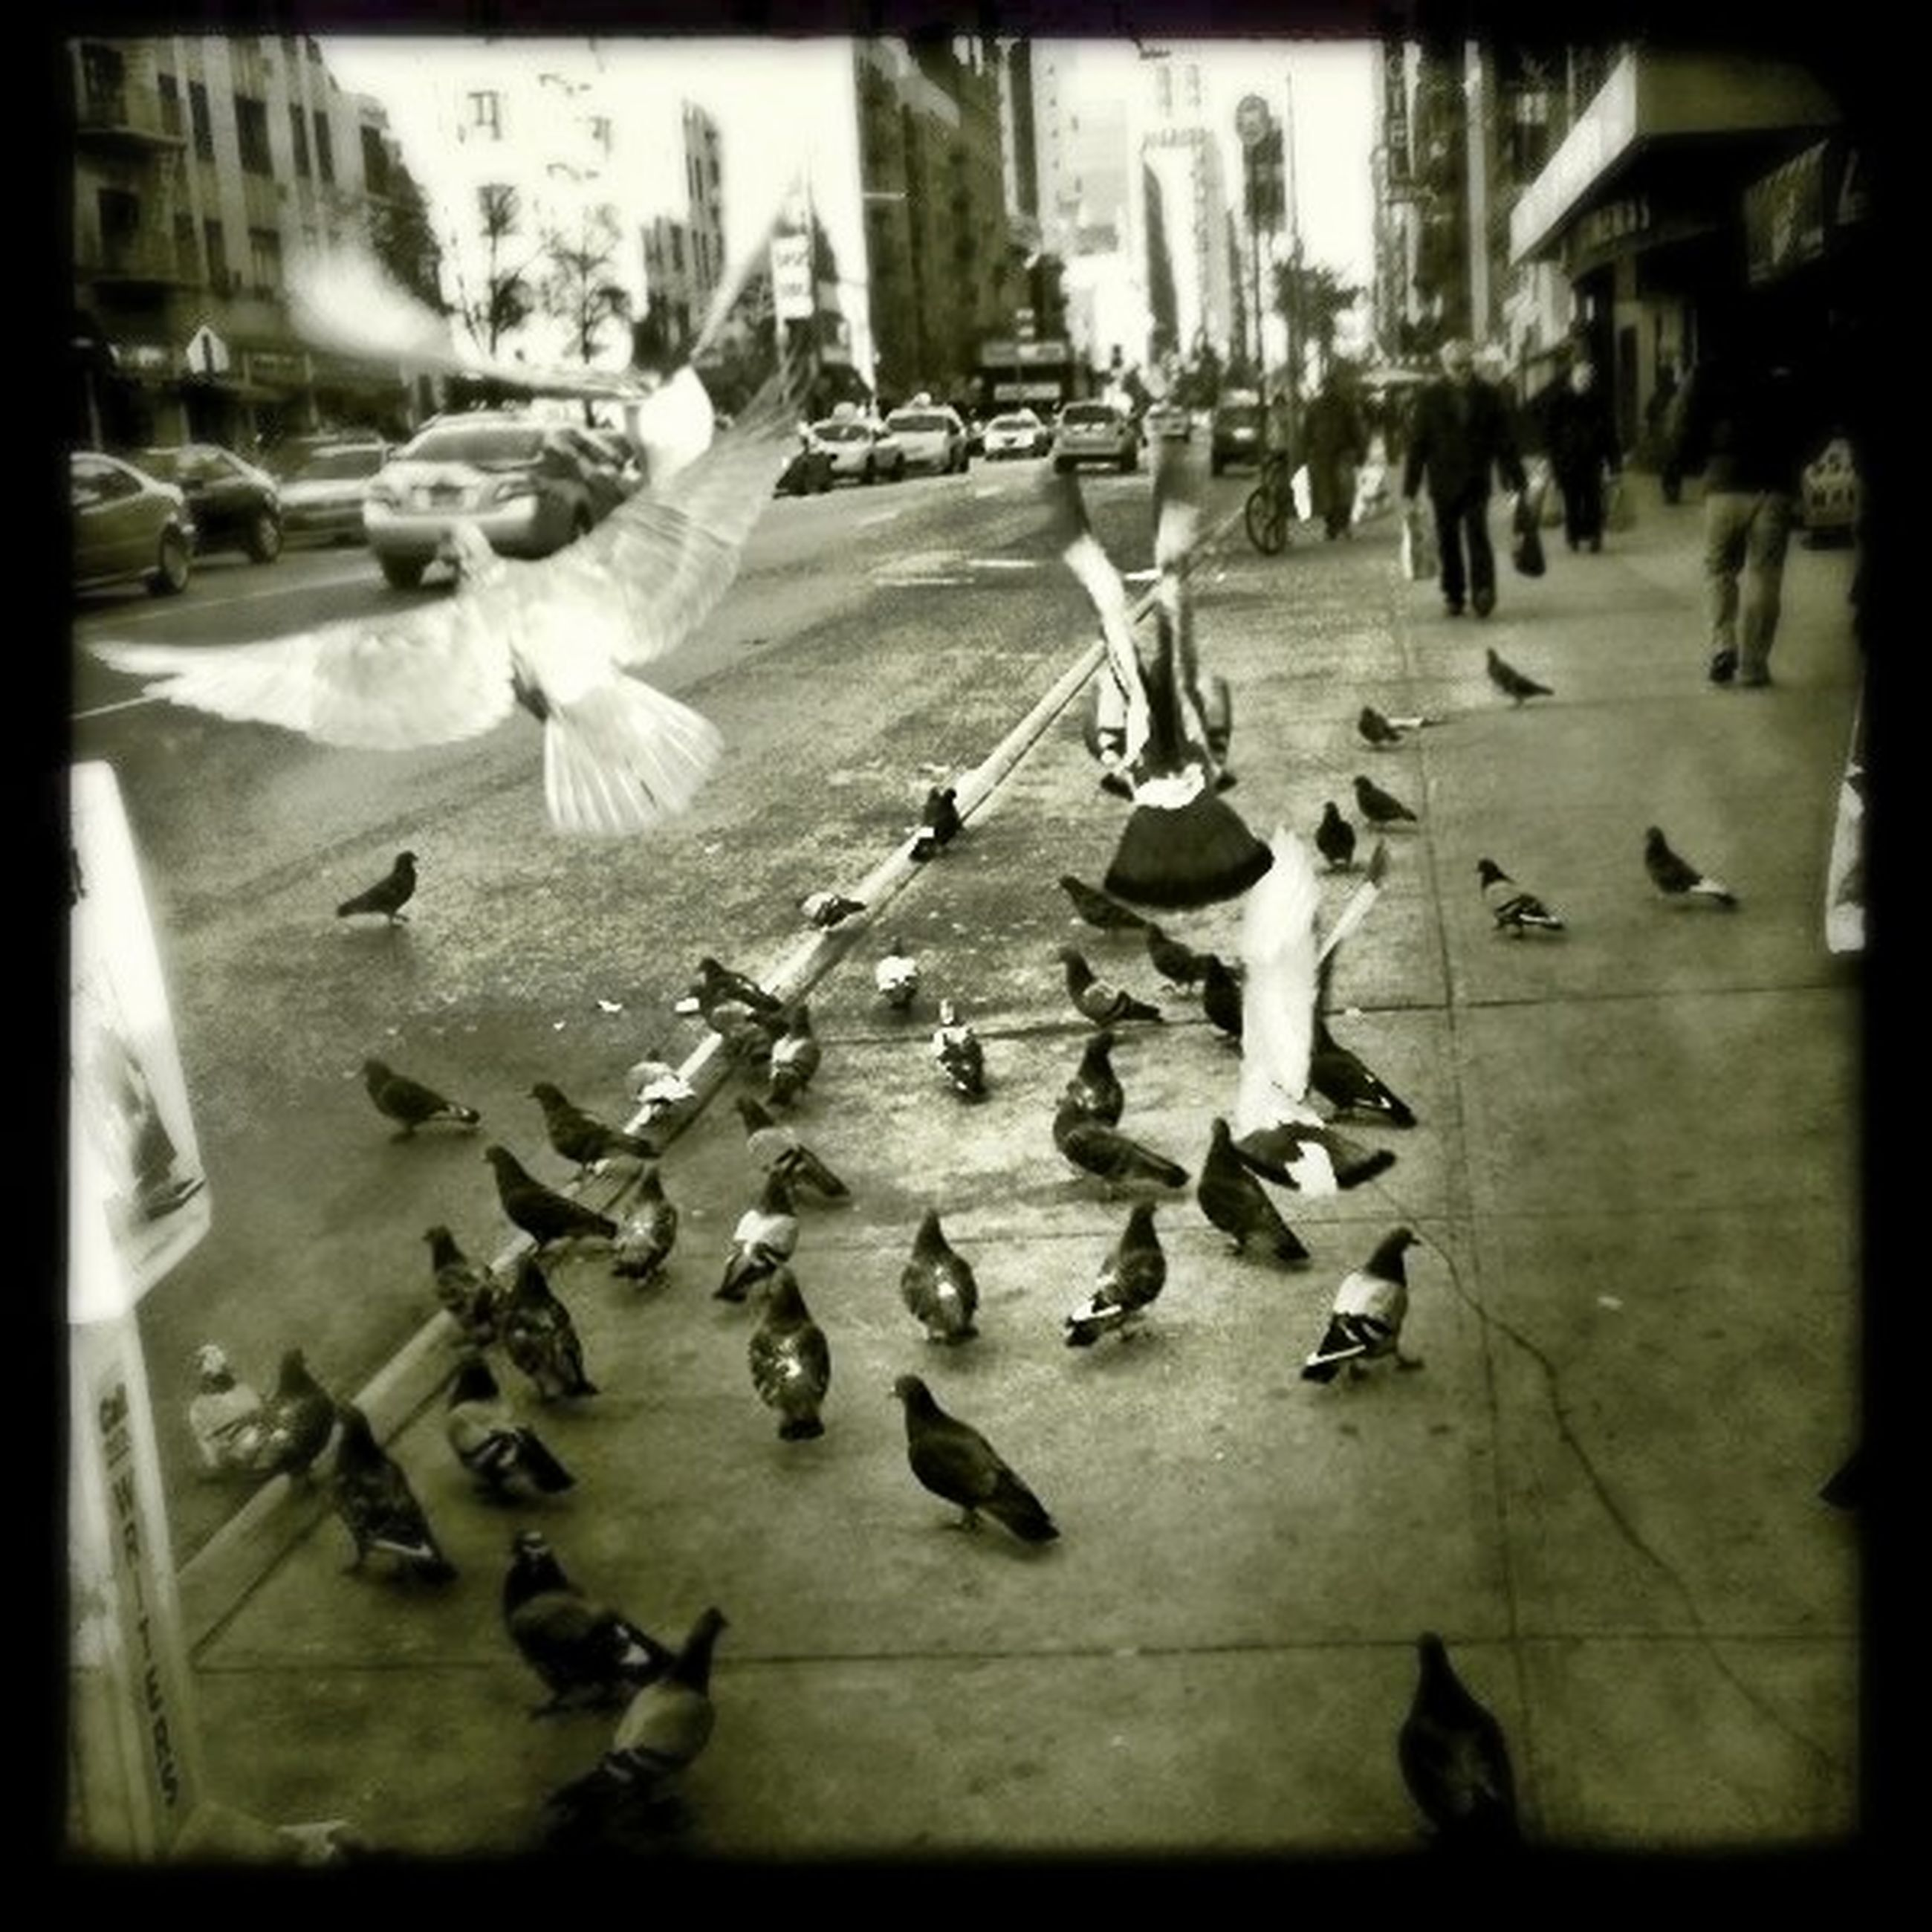 transfer print, bird, auto post production filter, large group of people, wildlife, city, animal themes, animals in the wild, city life, building exterior, street, built structure, pigeon, architecture, flying, person, flock of birds, high angle view